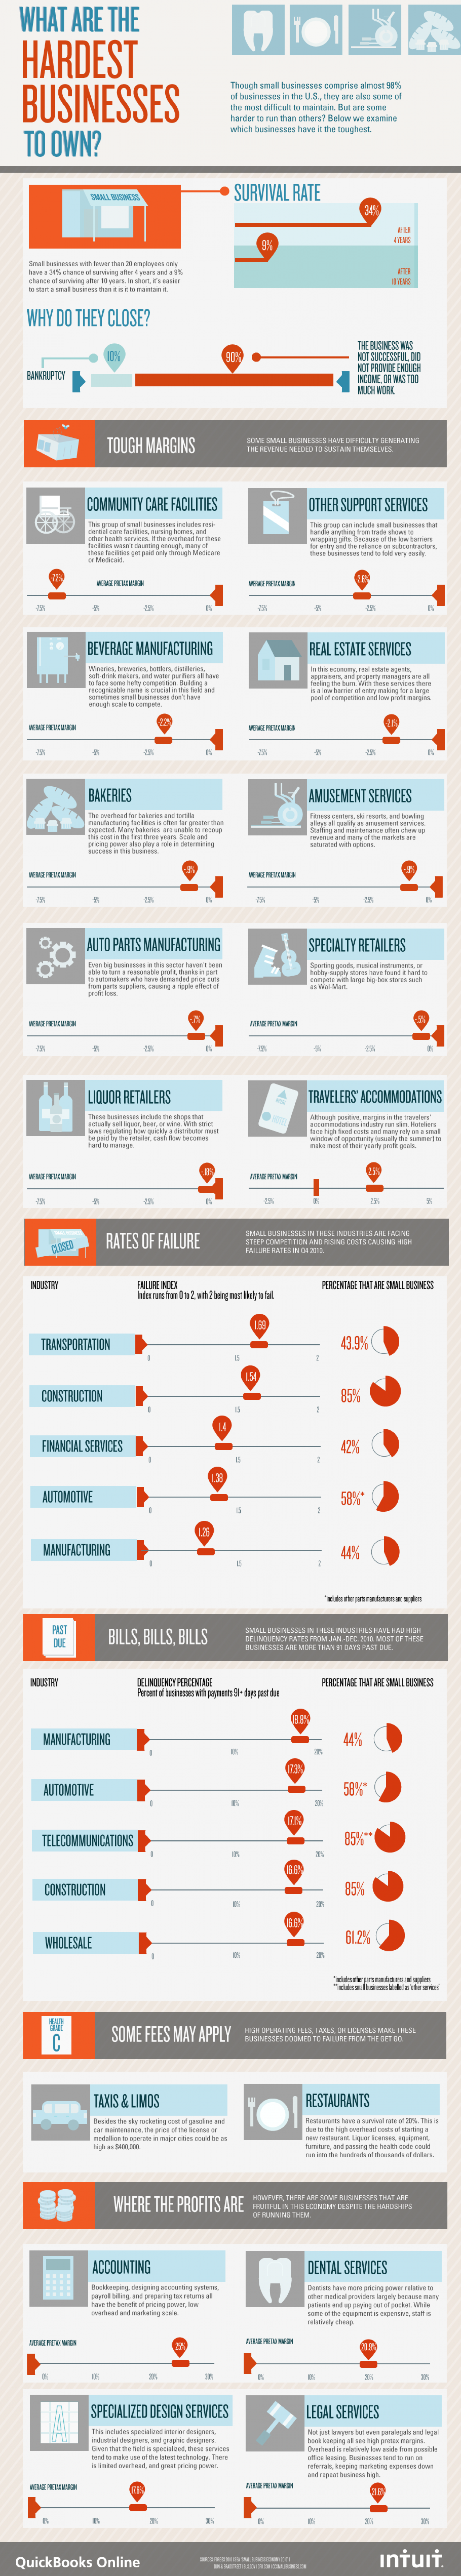 What Are the Hardest Small Businesses to Own  Infographic